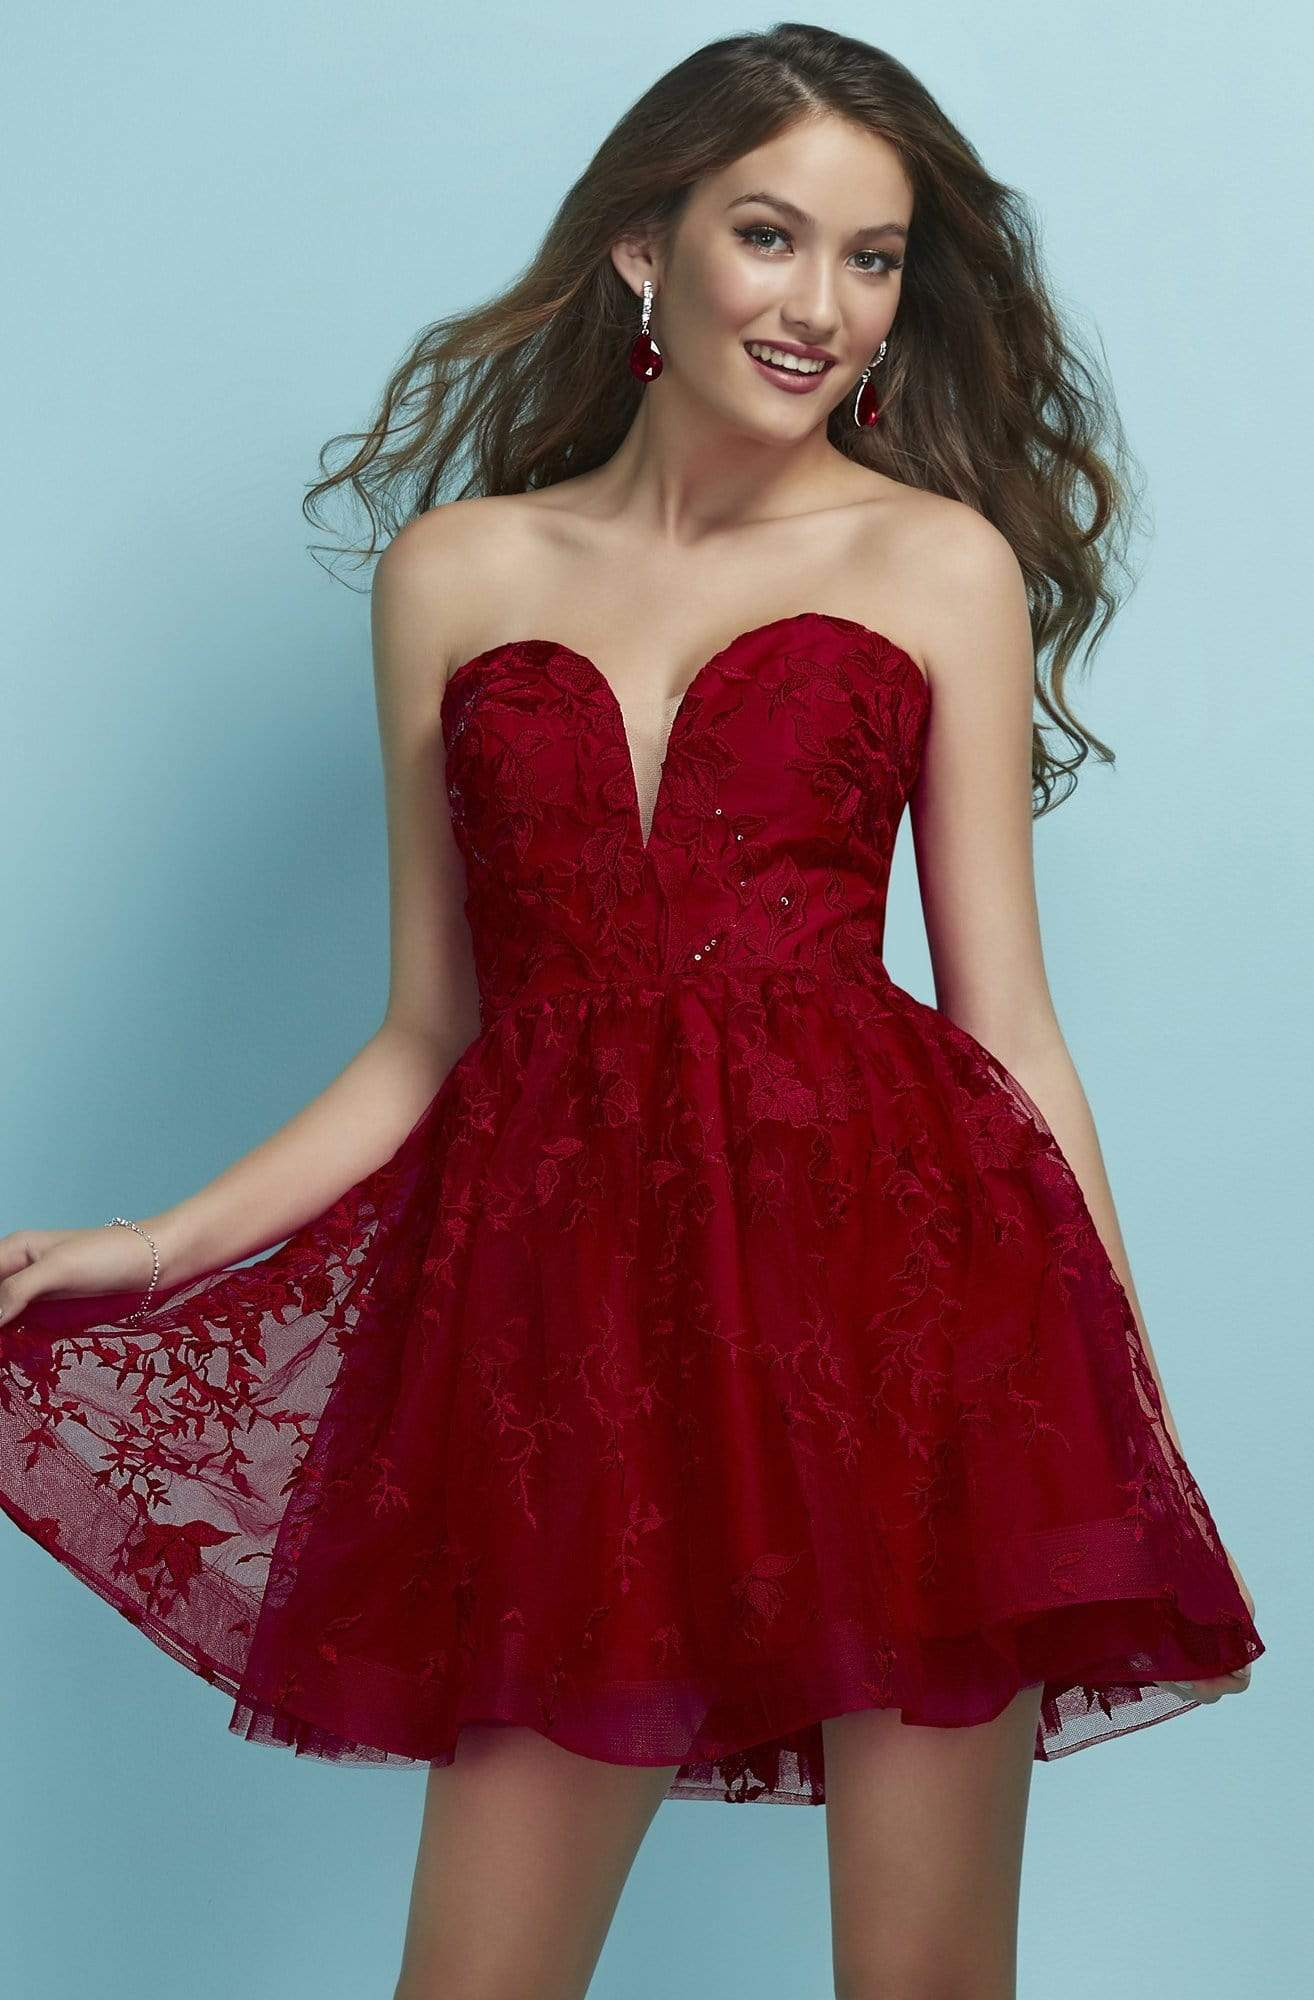 Tiffany Homecoming - 27271 Plunging Sweetheart Lace A-Line Dress from Tiffany Homecoming